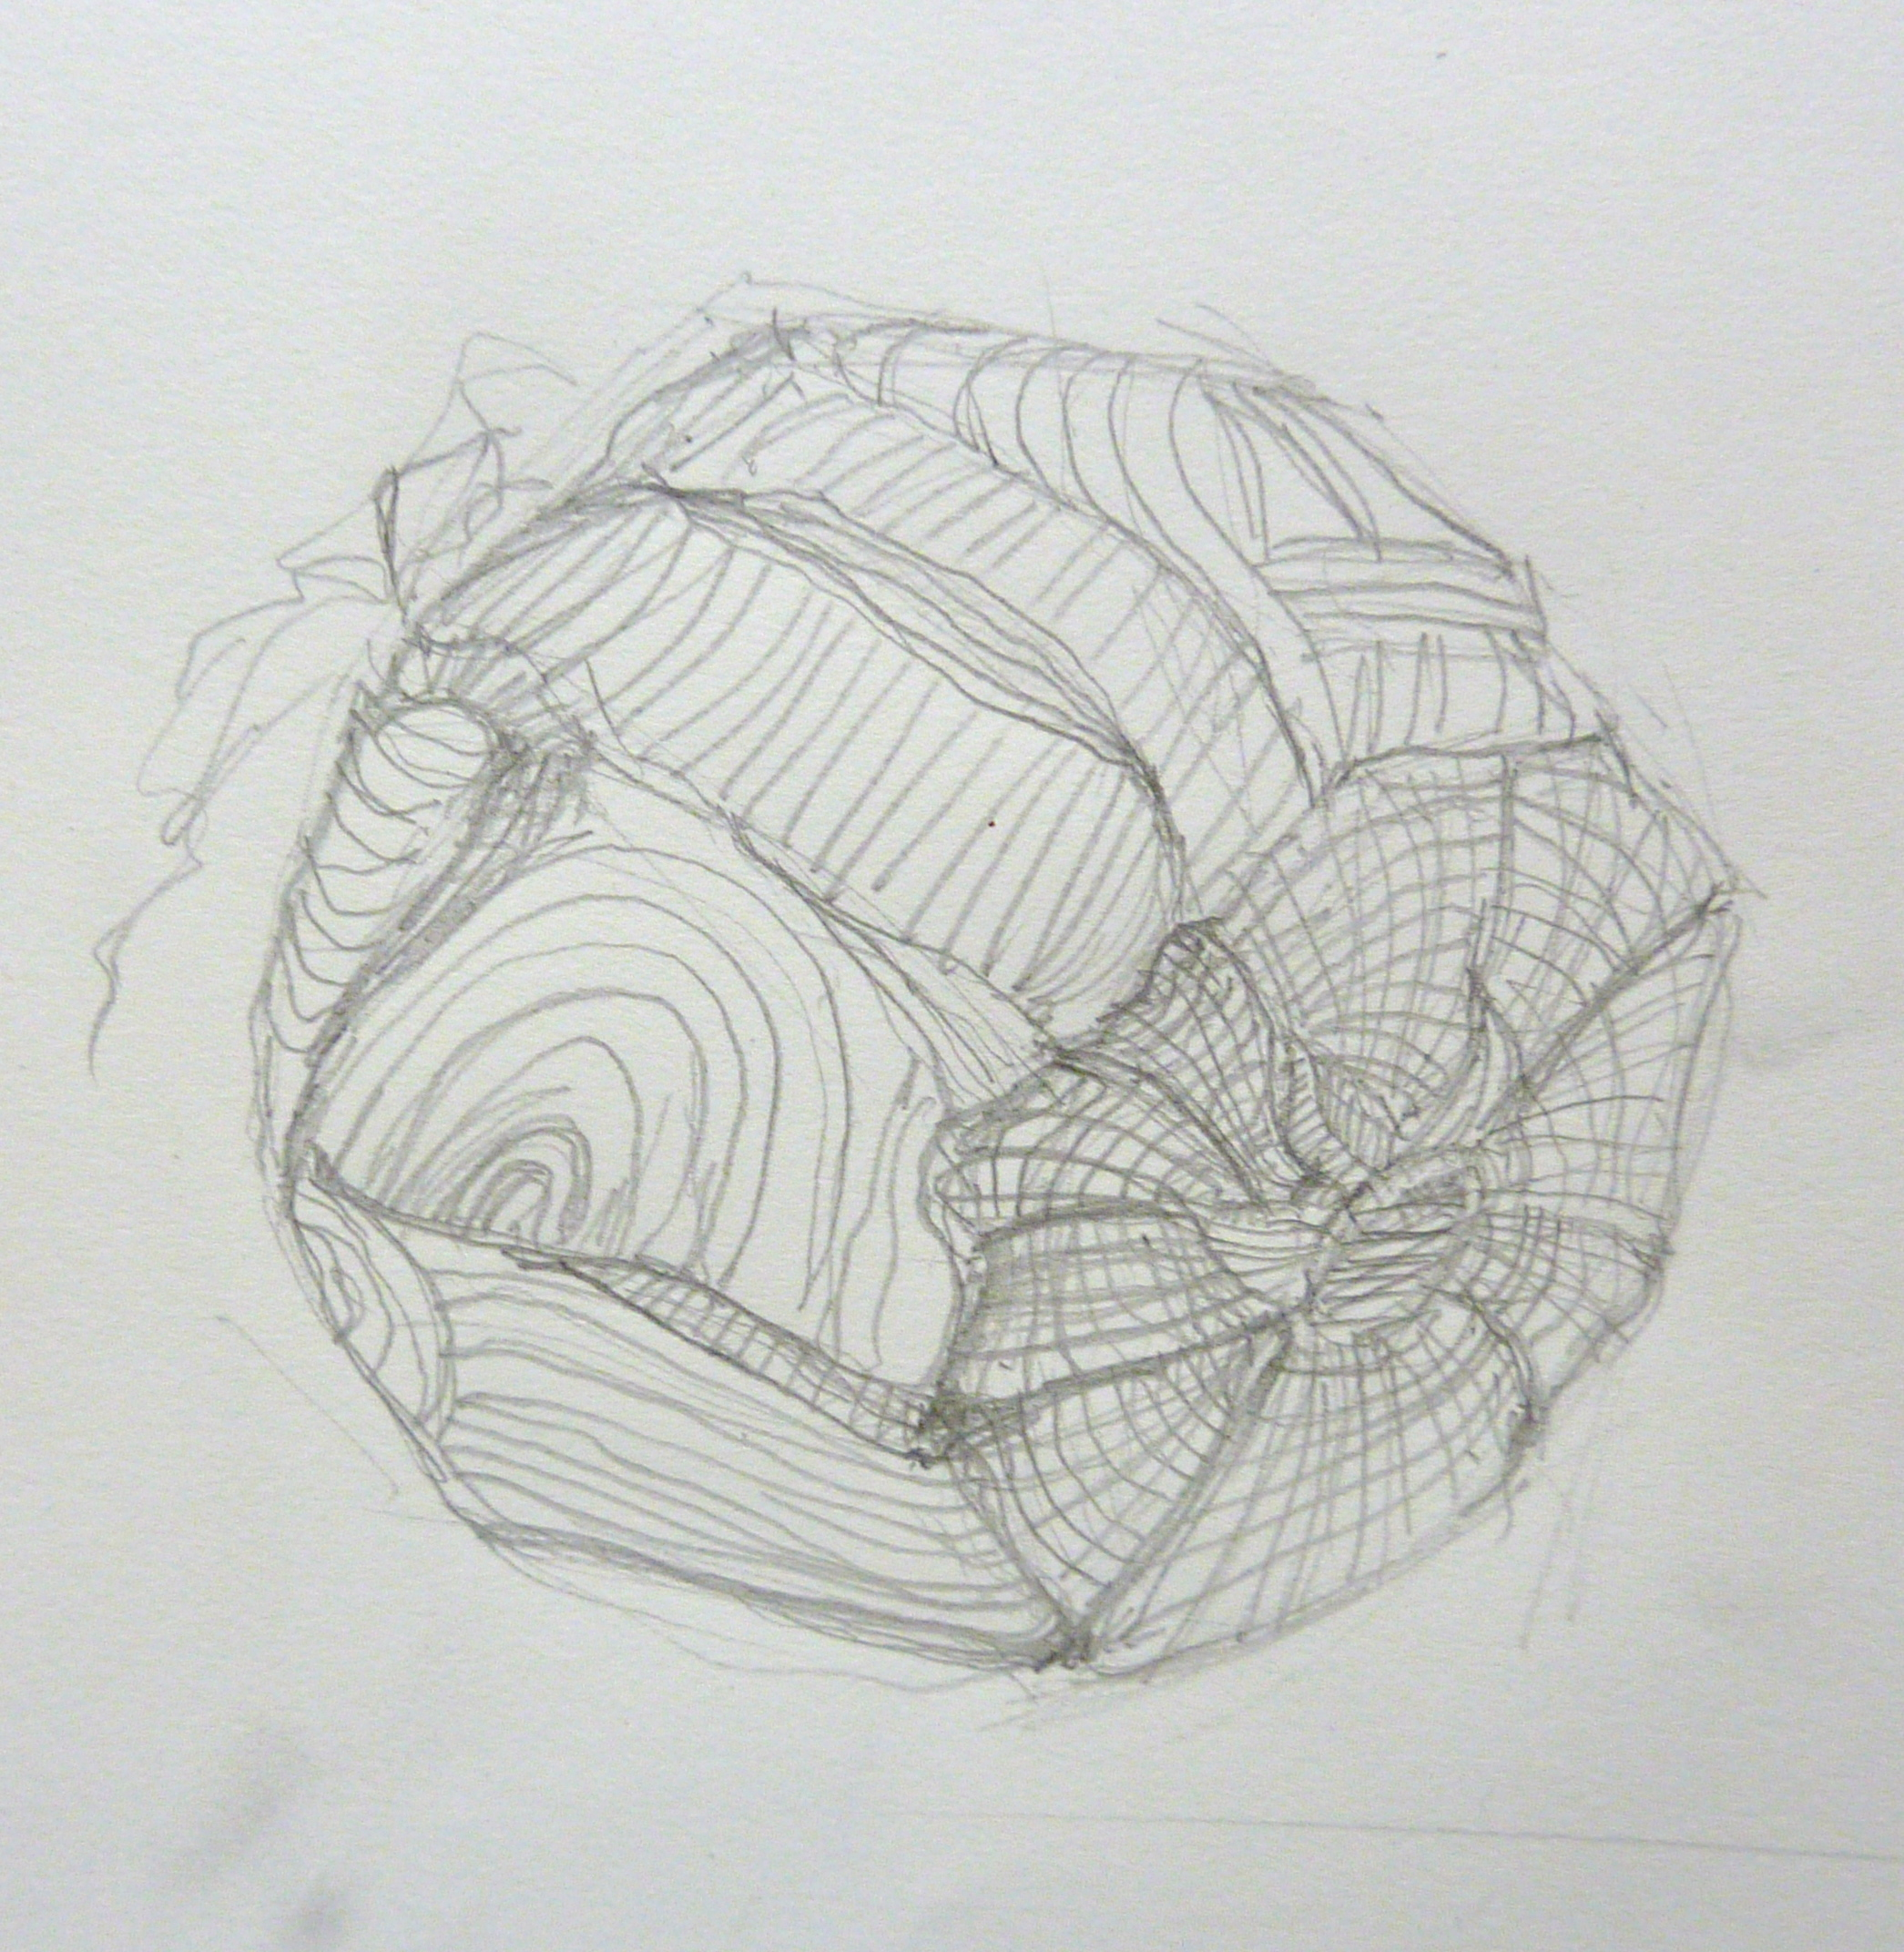 Cross Contour Line Drawing Fruit : October marlene lee fine art